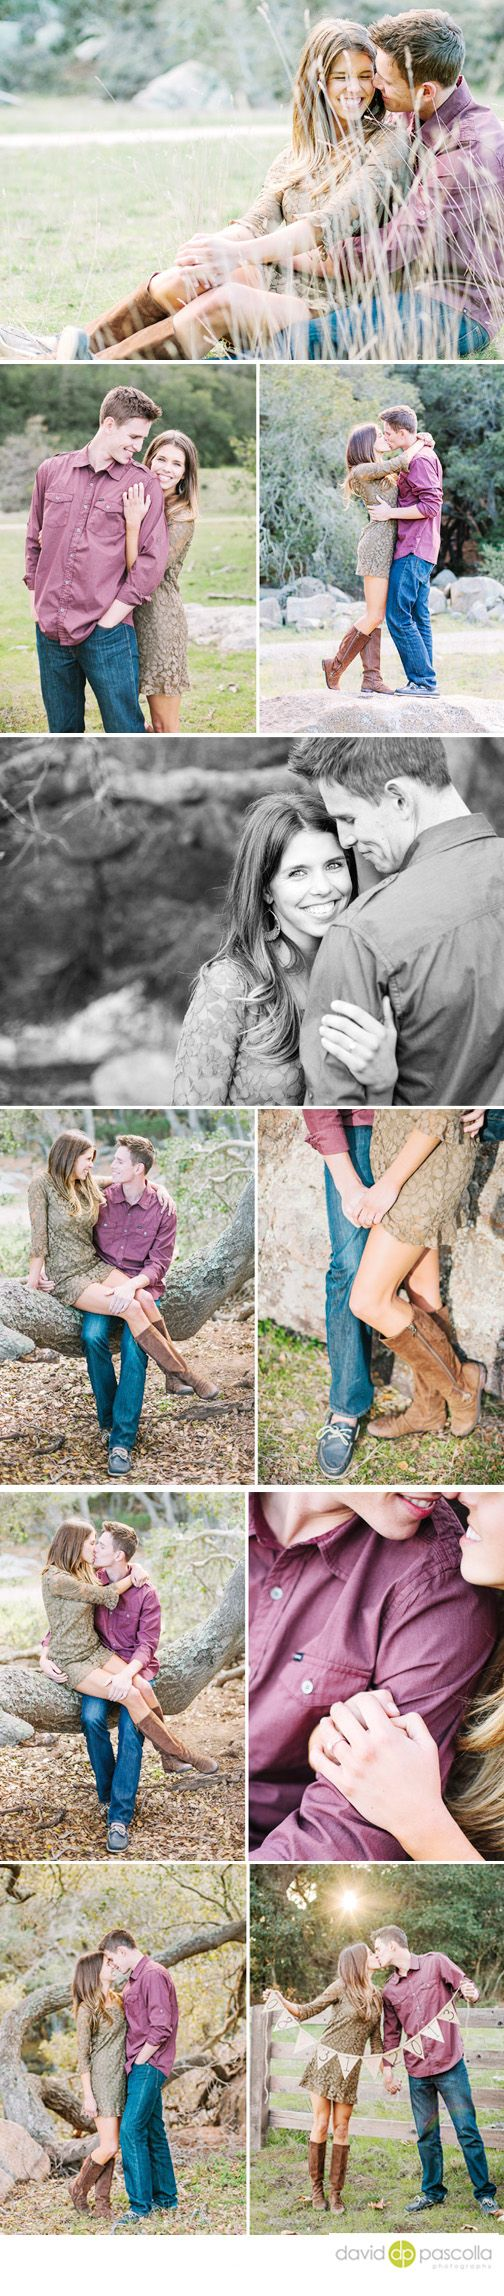 Adorable and fun ideas for a country engagement shoot!  Sweet, simple, and timeless #engagementphotos #weddingphotography #portraits www.davidpascolla.com